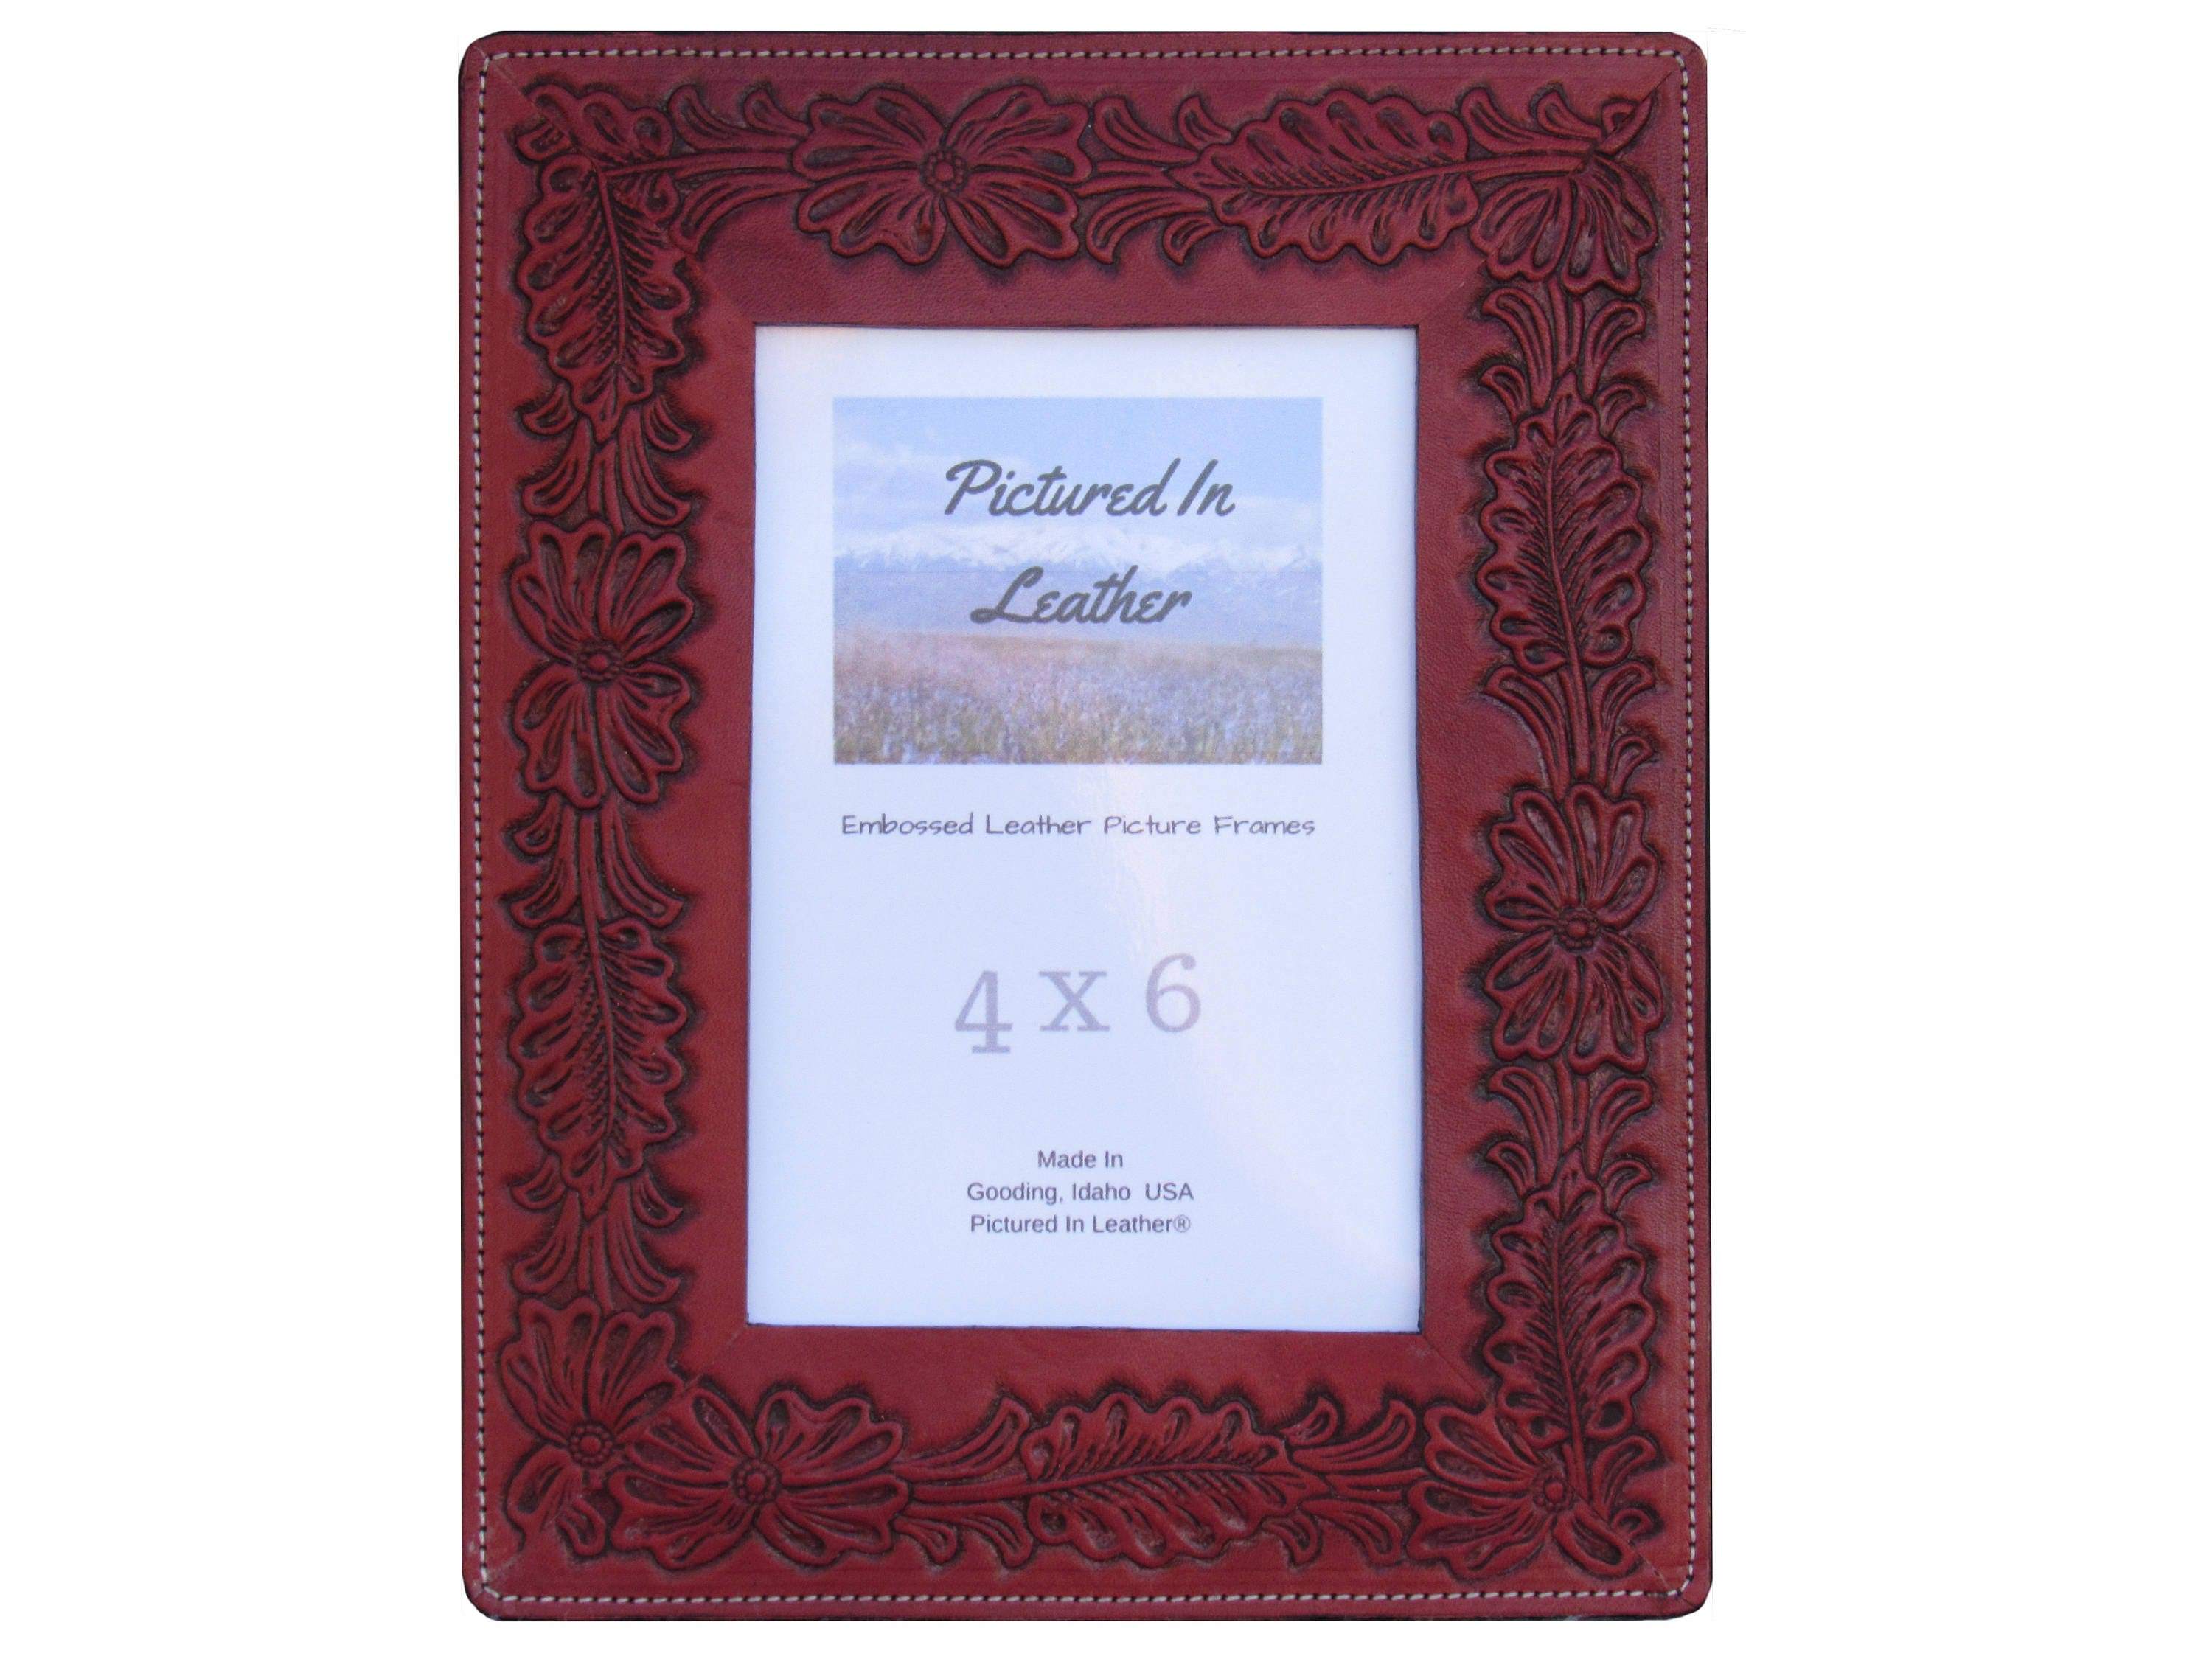 Leather picture frame 4x6 embossed with a flower design cherry leather picture frame 4x6 embossed with a flower design cherry mahogany color beautiful flower picture frame ready to ship izmirmasajfo